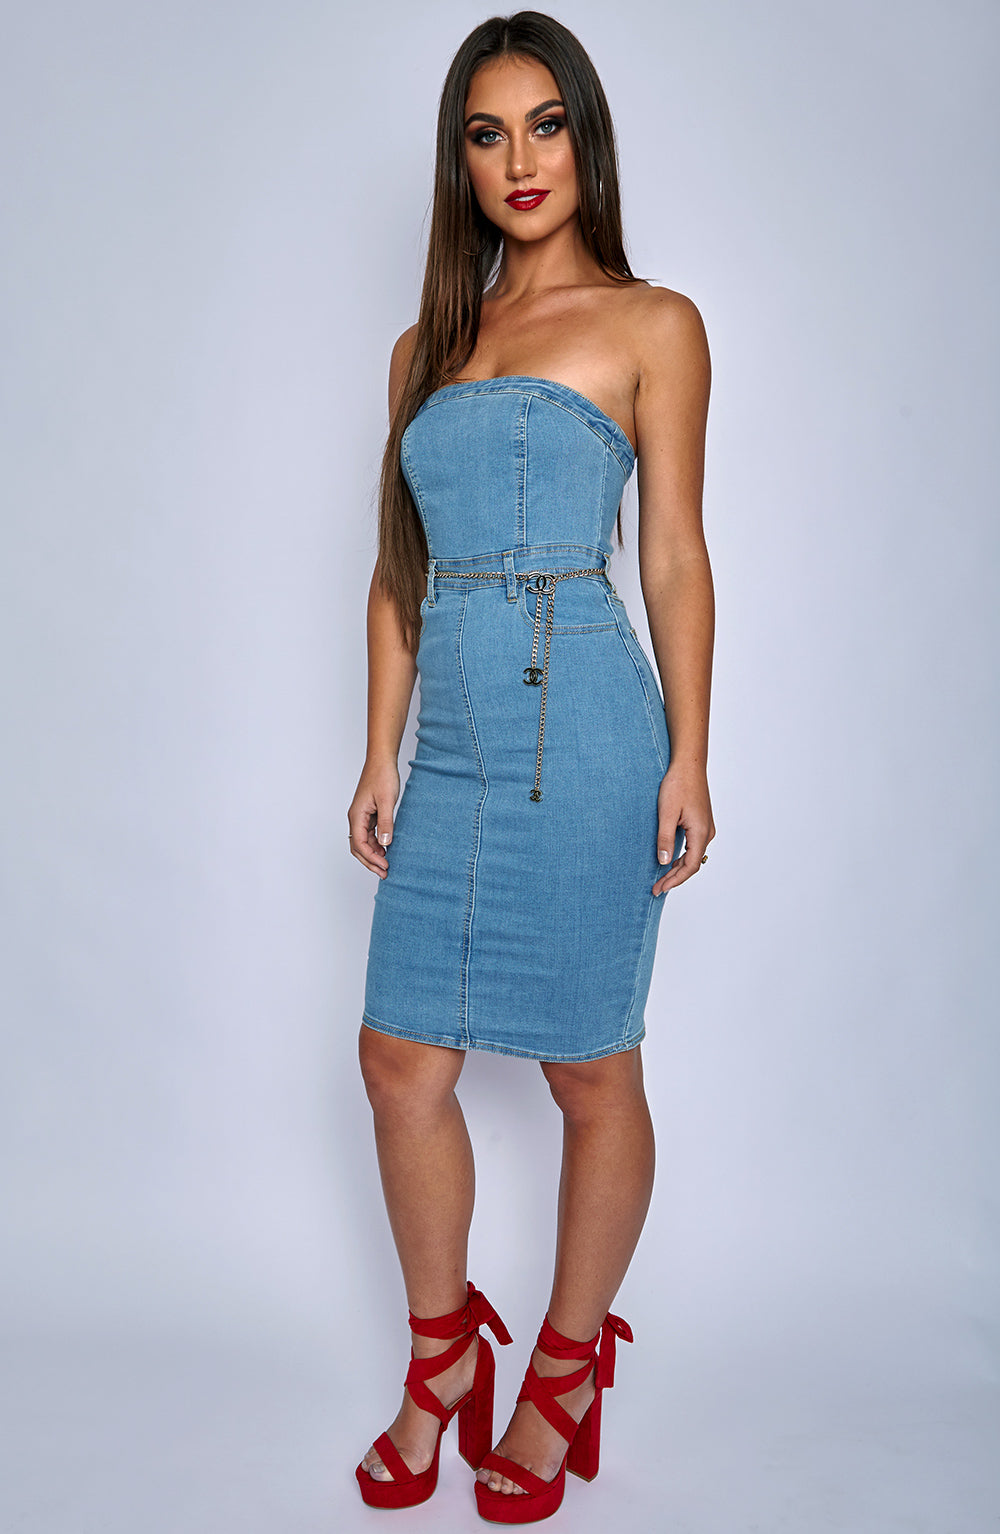 Cia Dress - Blue Denim